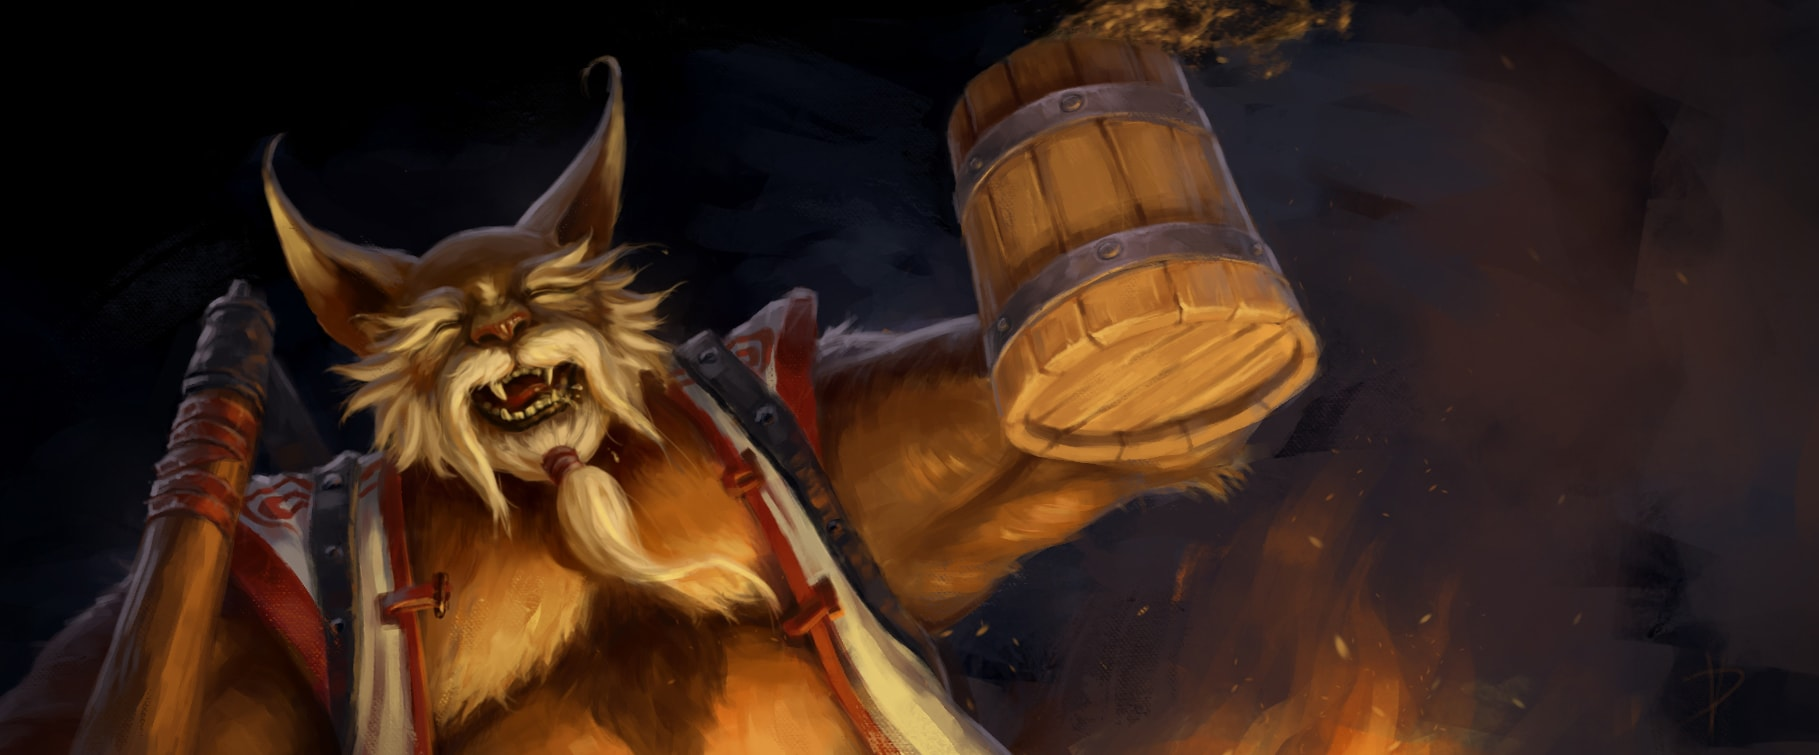 Dota2 : Brewmaster full hd wallpapers